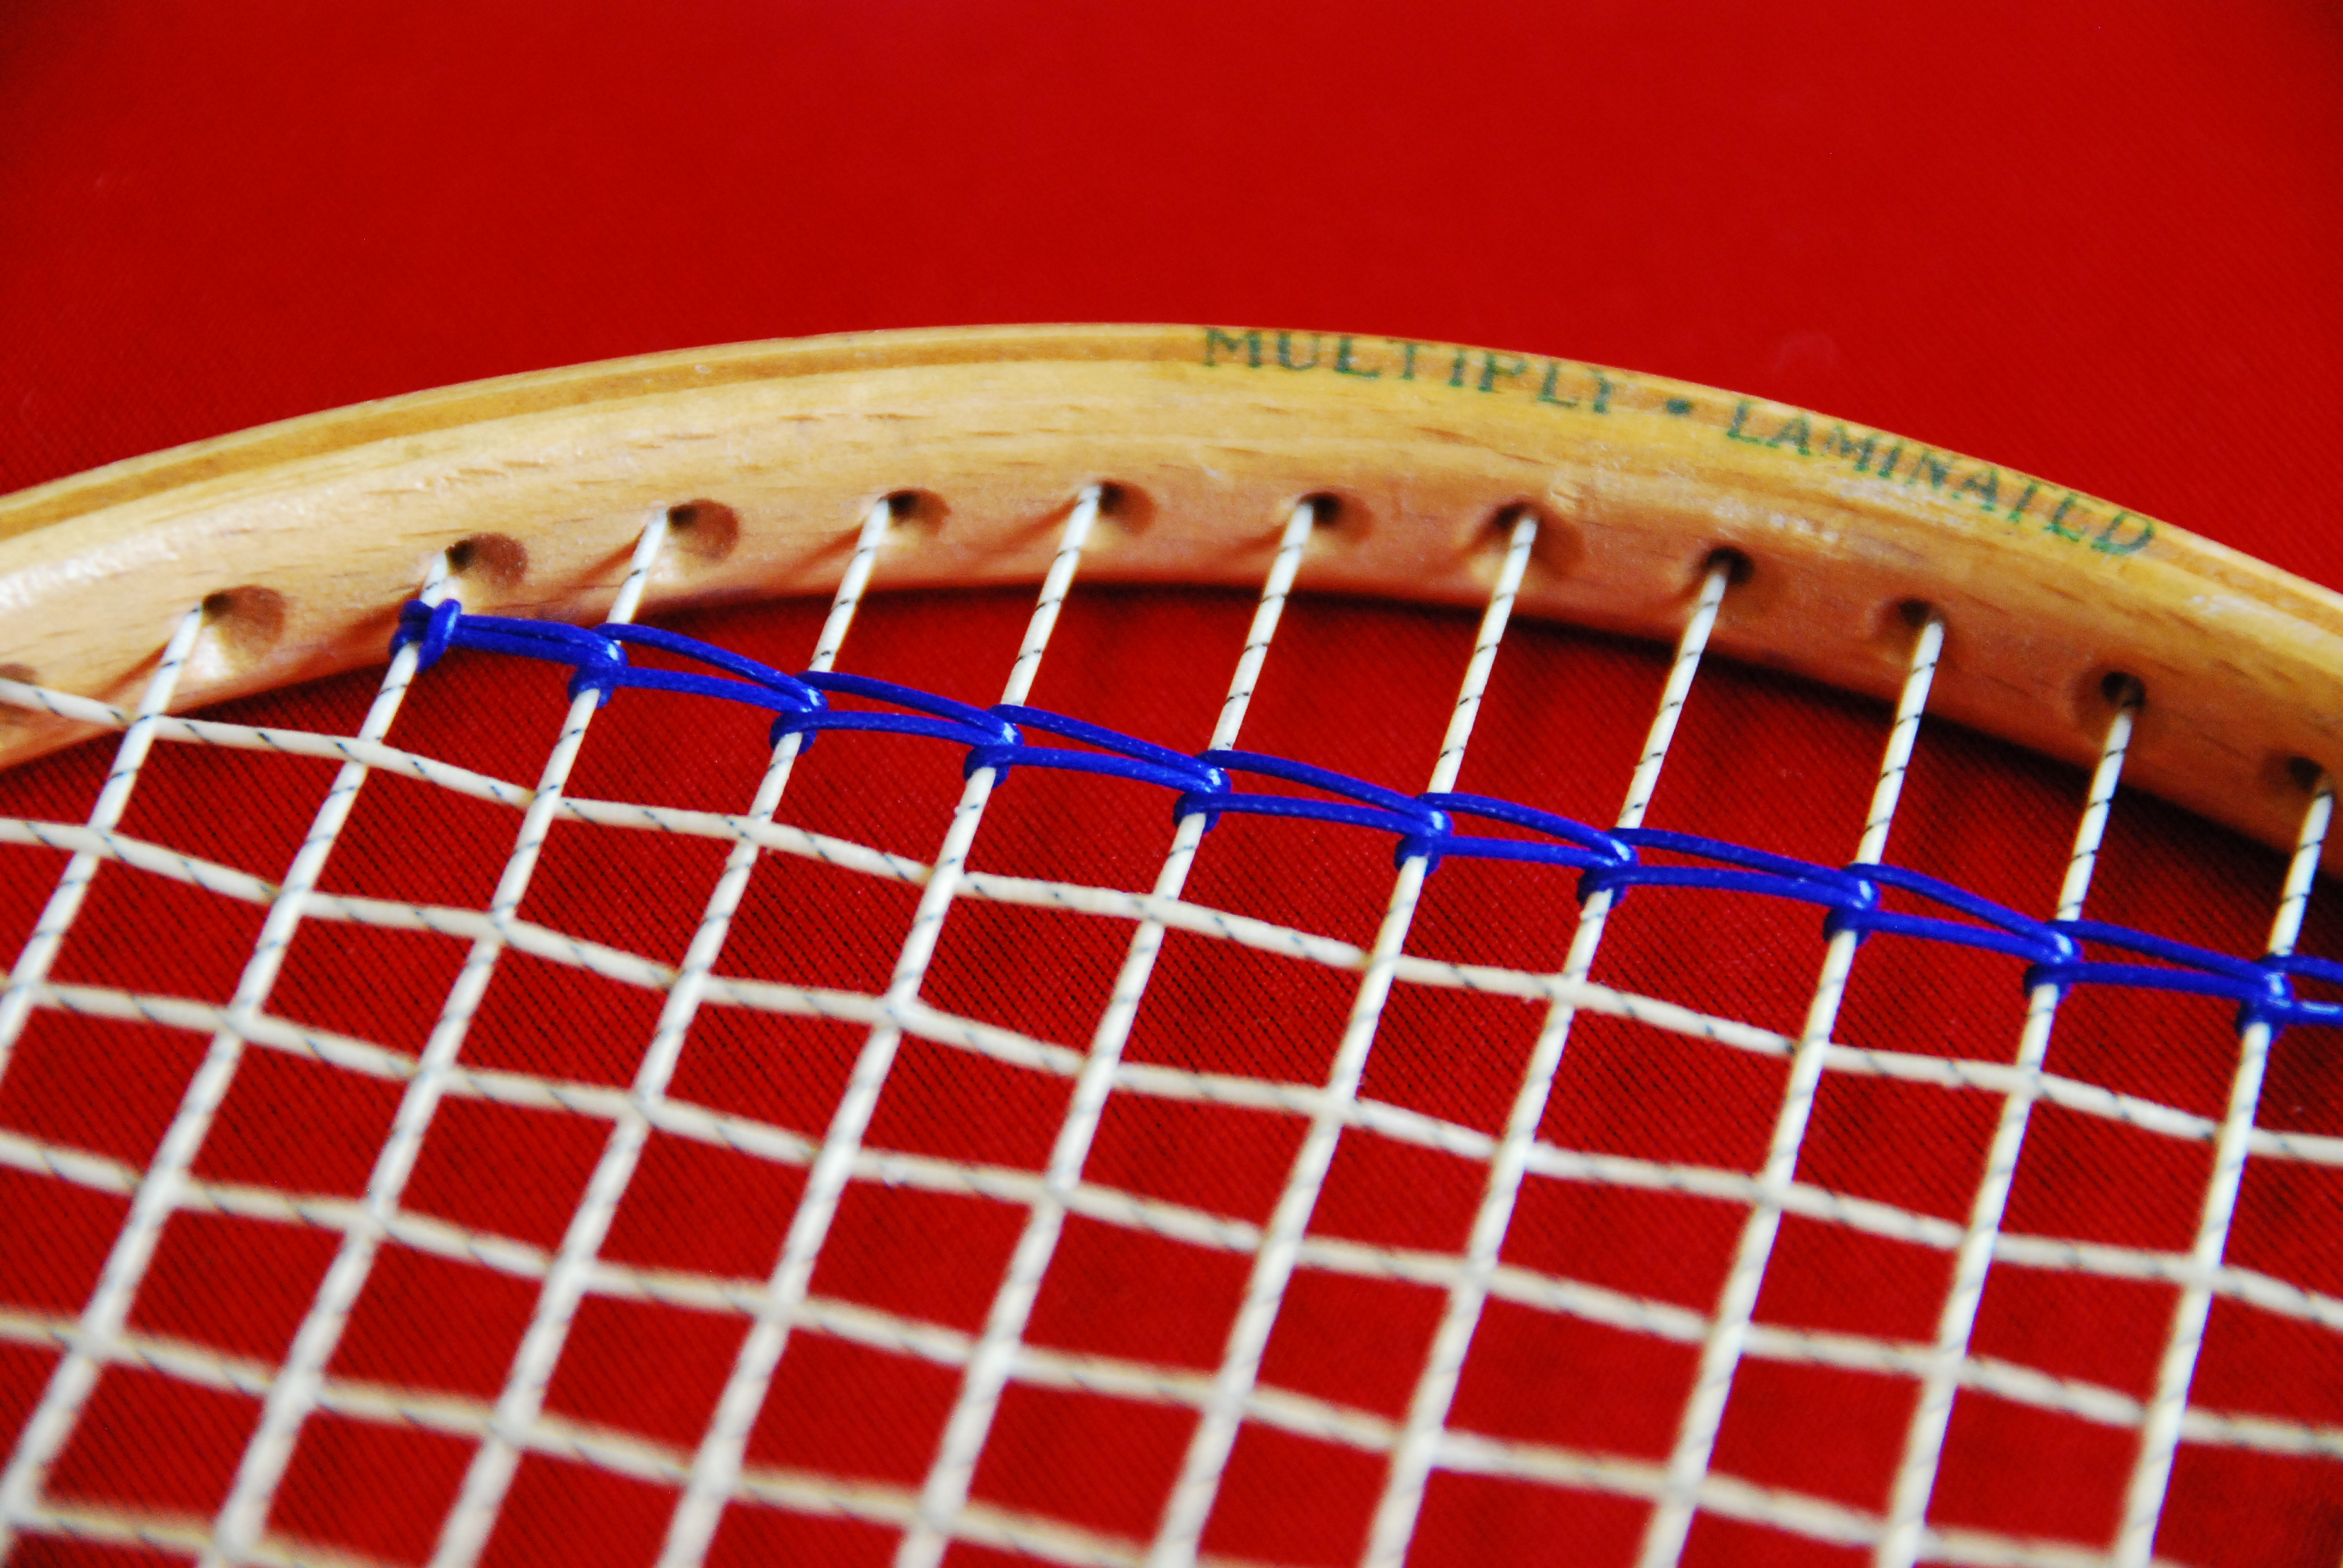 Untitled 1 in the old days with wooden rackets when 10 lbs or so of tension was tight a string was used at top and bottom of the racket to help keep the mains buycottarizona